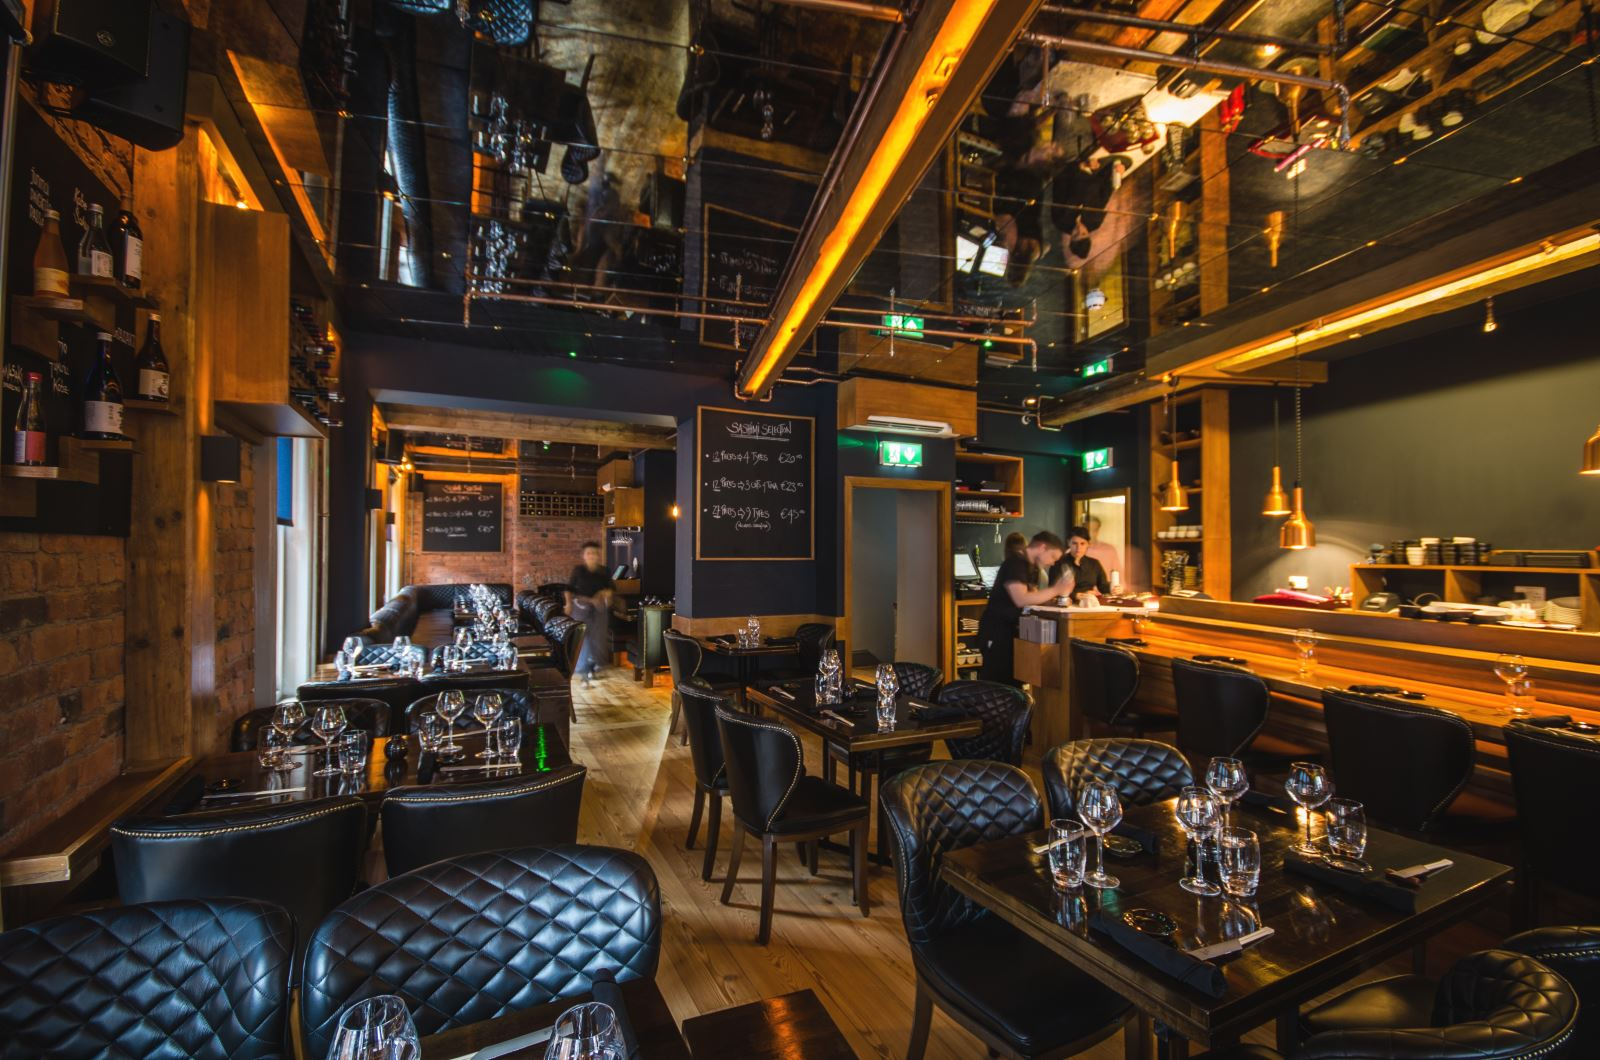 Treat your Mam this Mother's Day at Rustic Stone